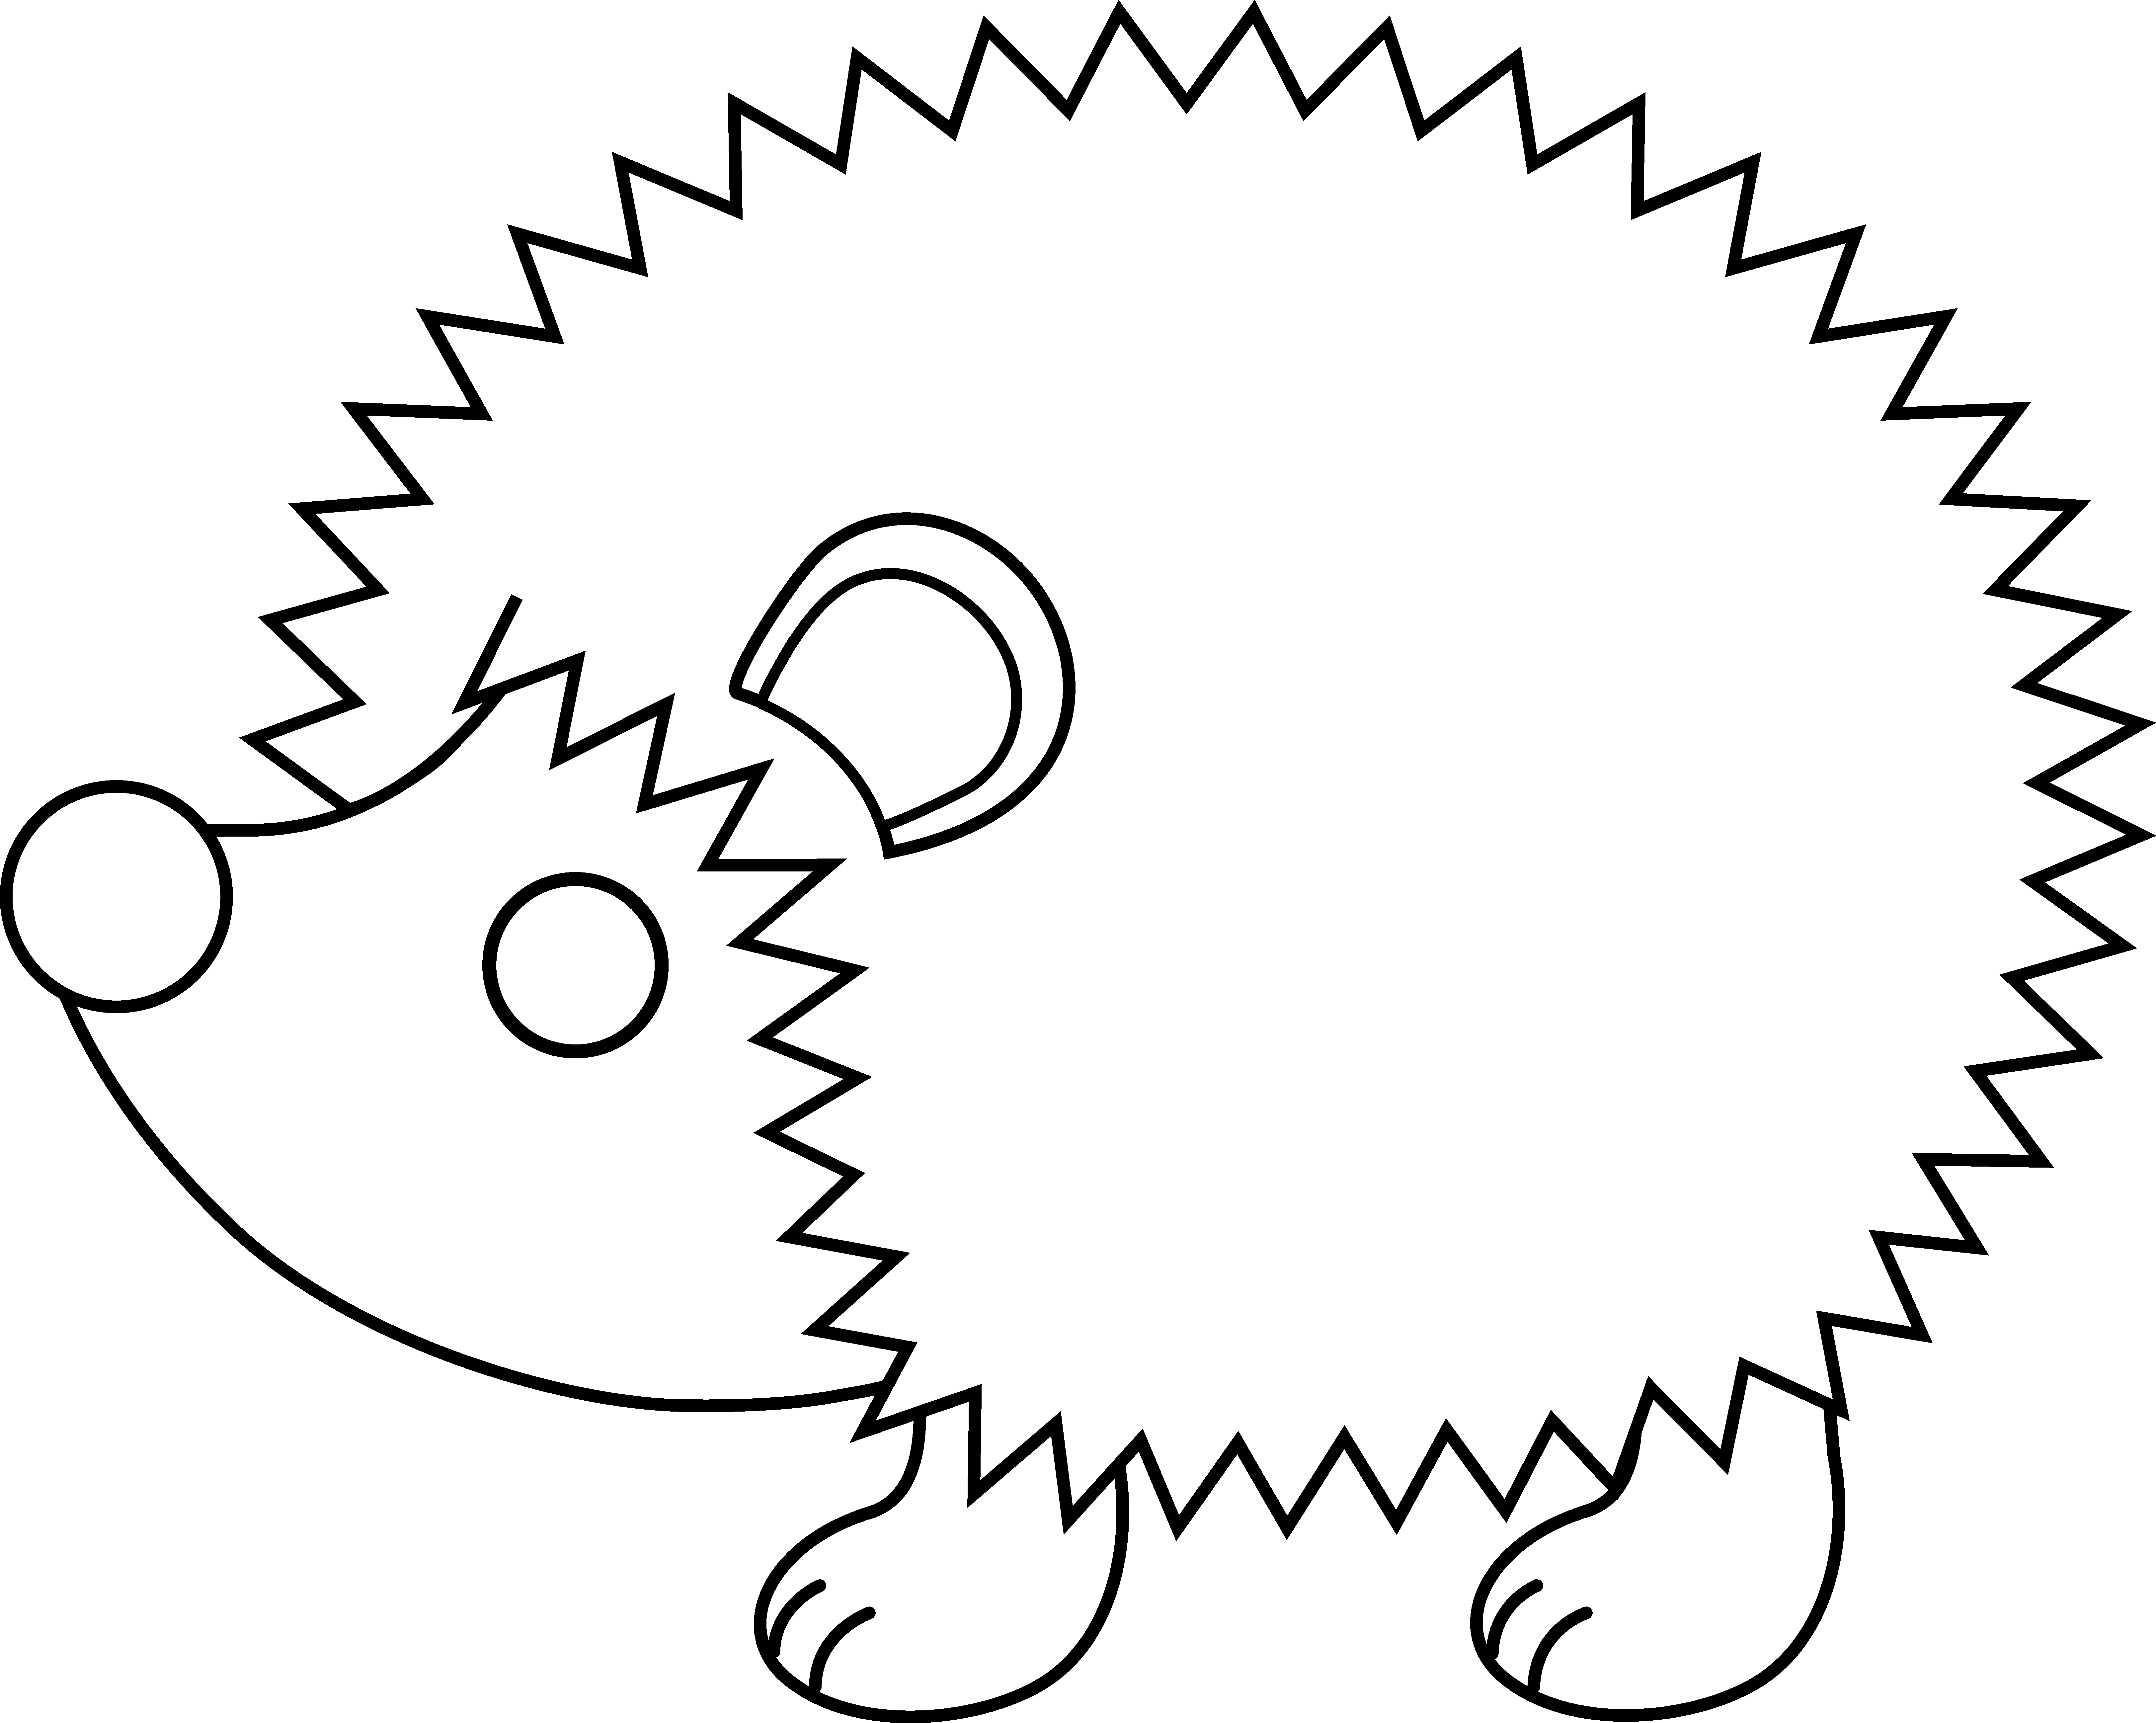 Hedgehog clipart black and white.